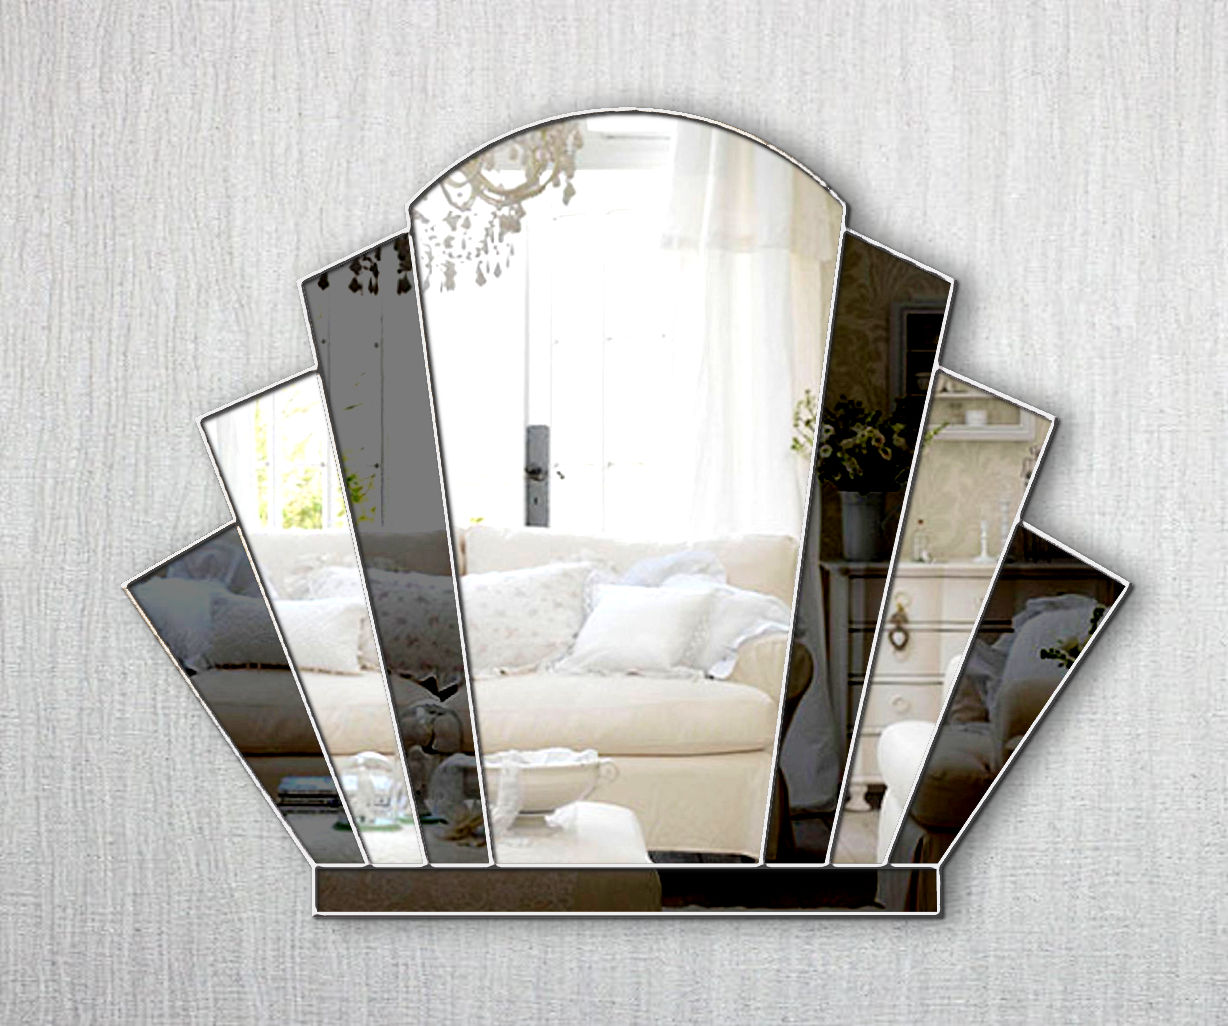 Gatsby Original Handcrafted Art Deco Over Mantle Fan Wall Mirror With Black Glass And Silver Trim Bespoke Mirrors Art Deco Mirrors Custom Made Mirrors